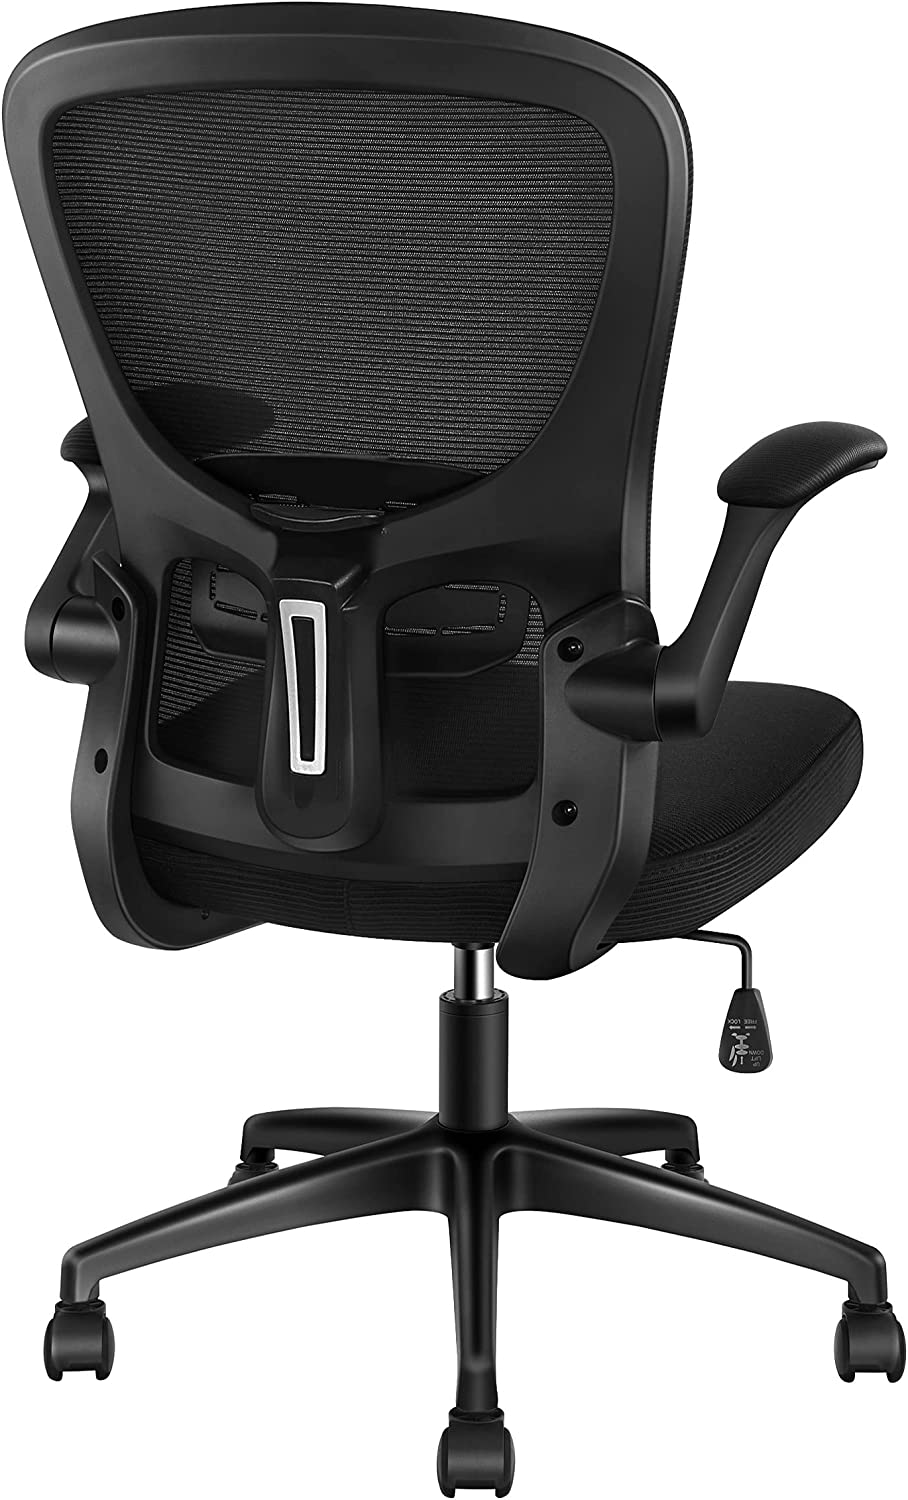 Sawfunrt Office Chair Computer $57.50 Coupon